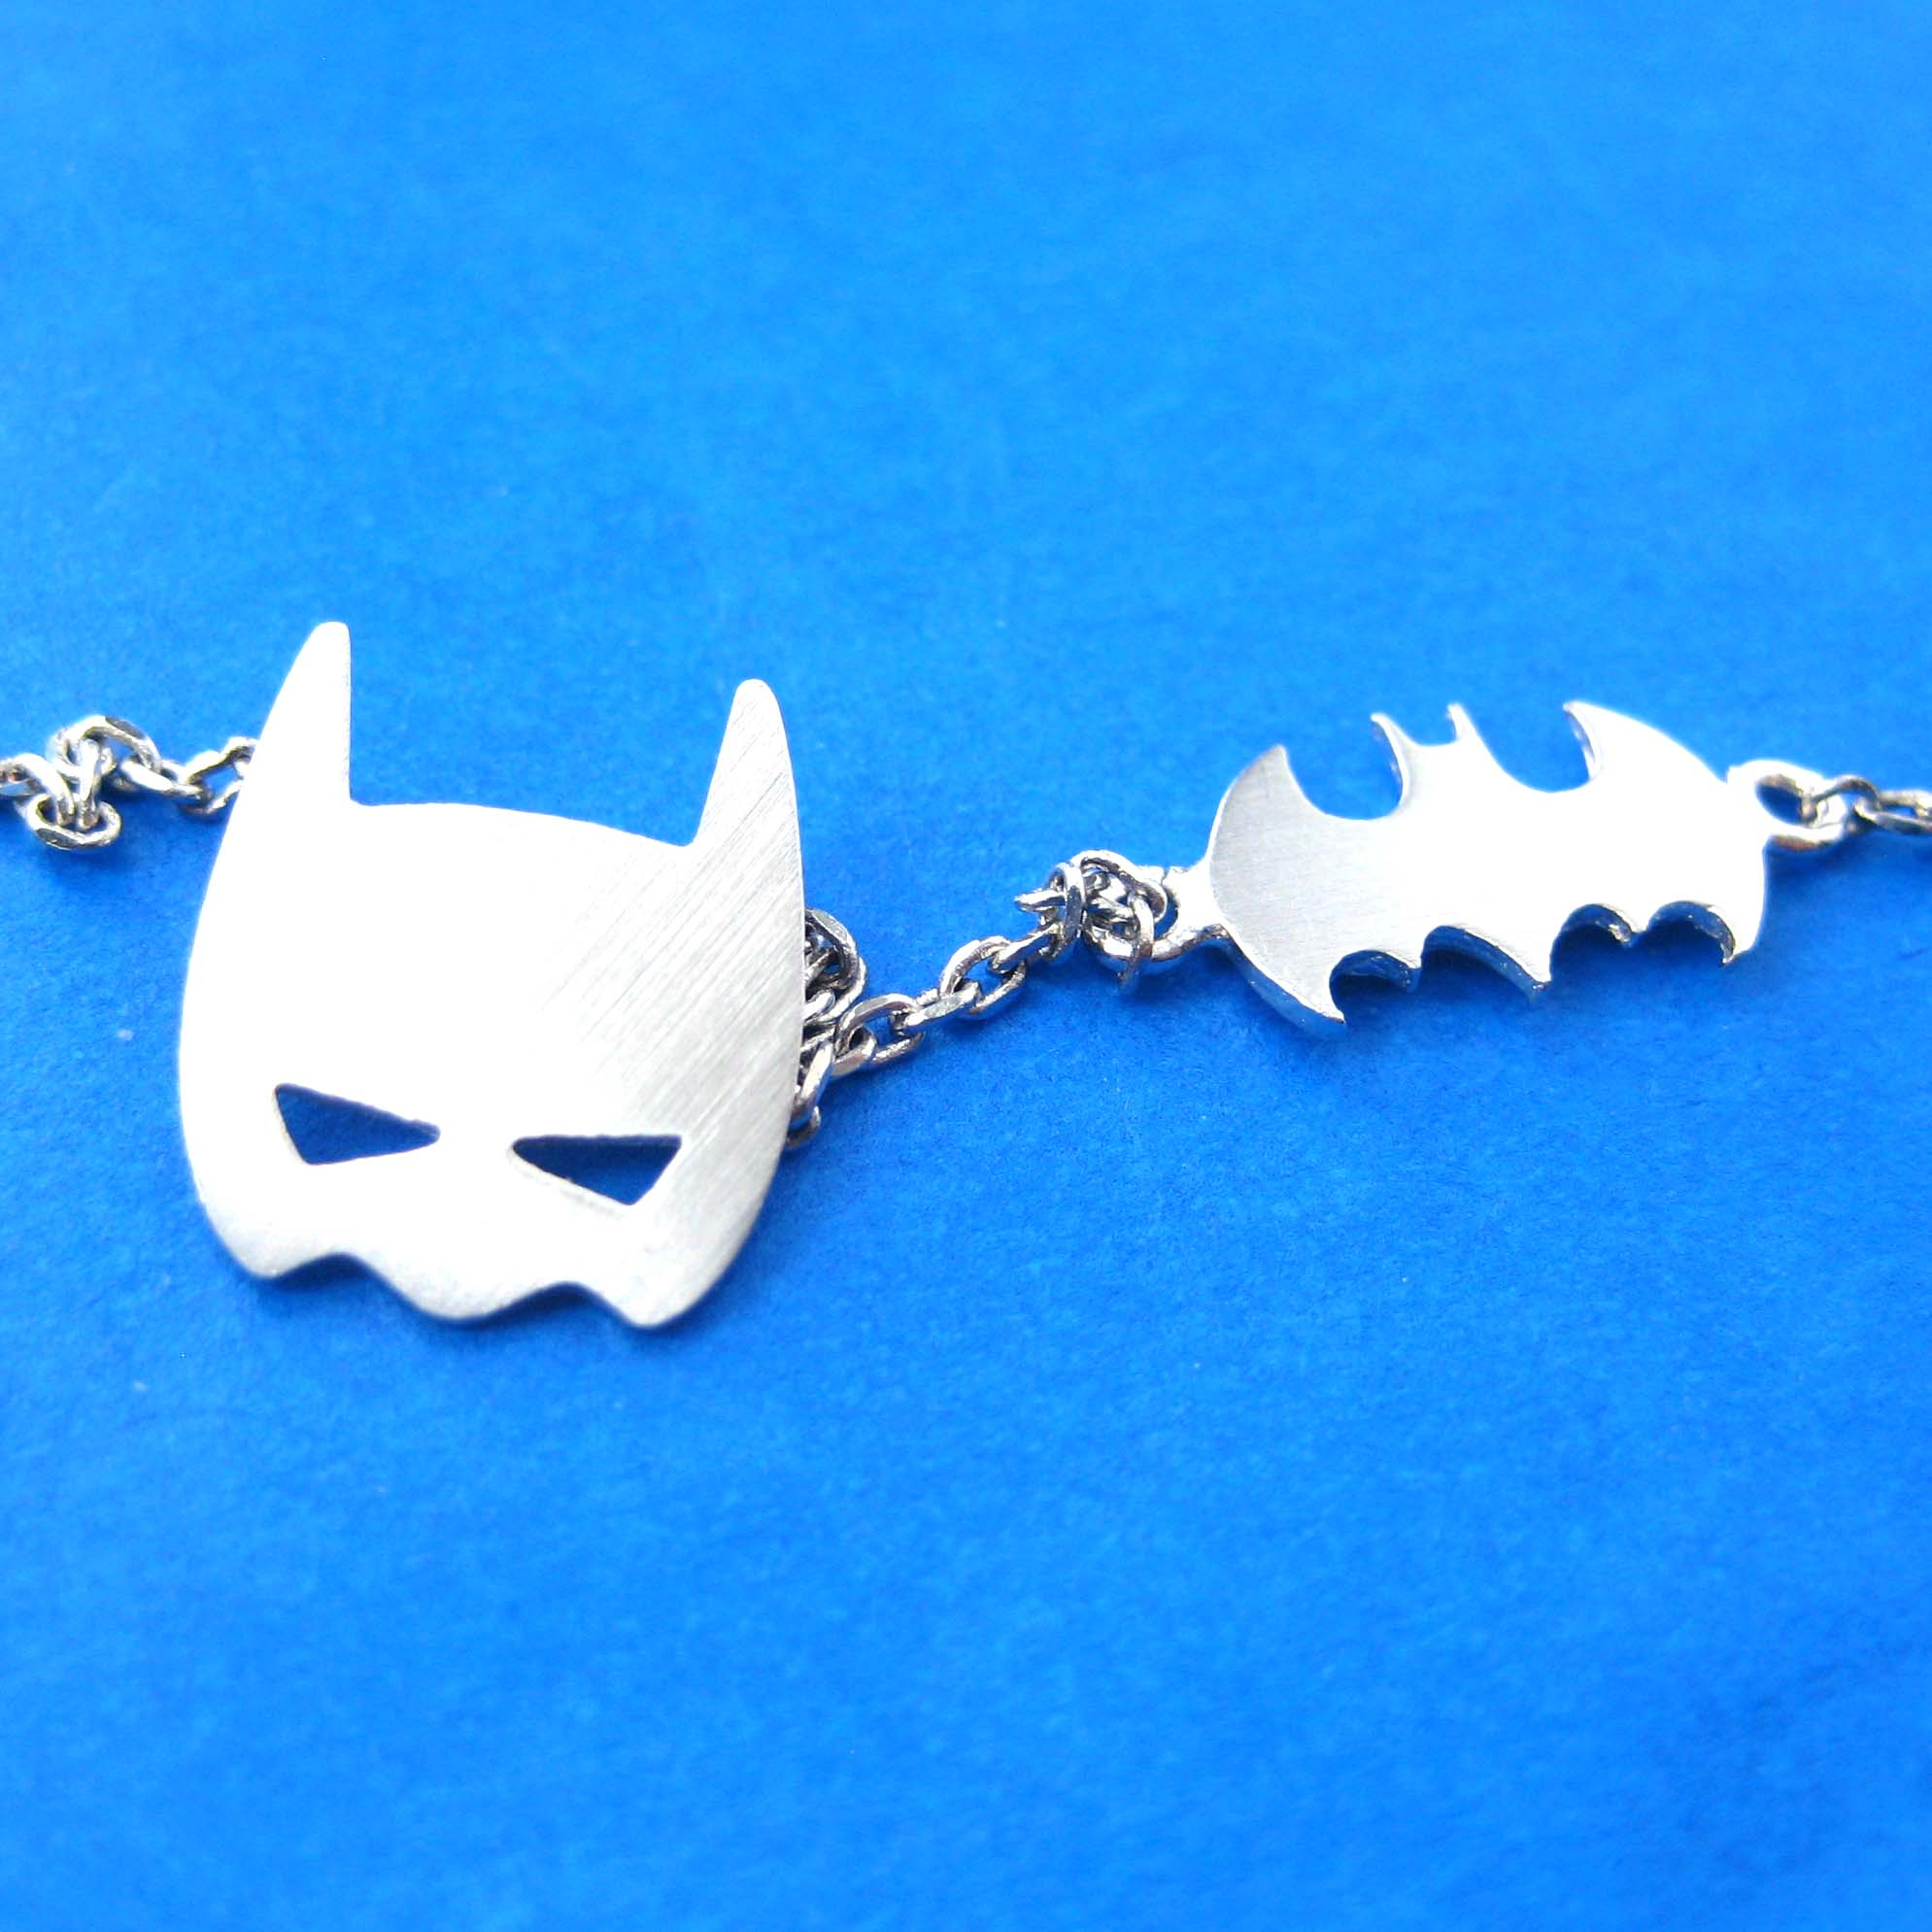 batman-bat-logo-silhouette-and-batman-mask-necklace